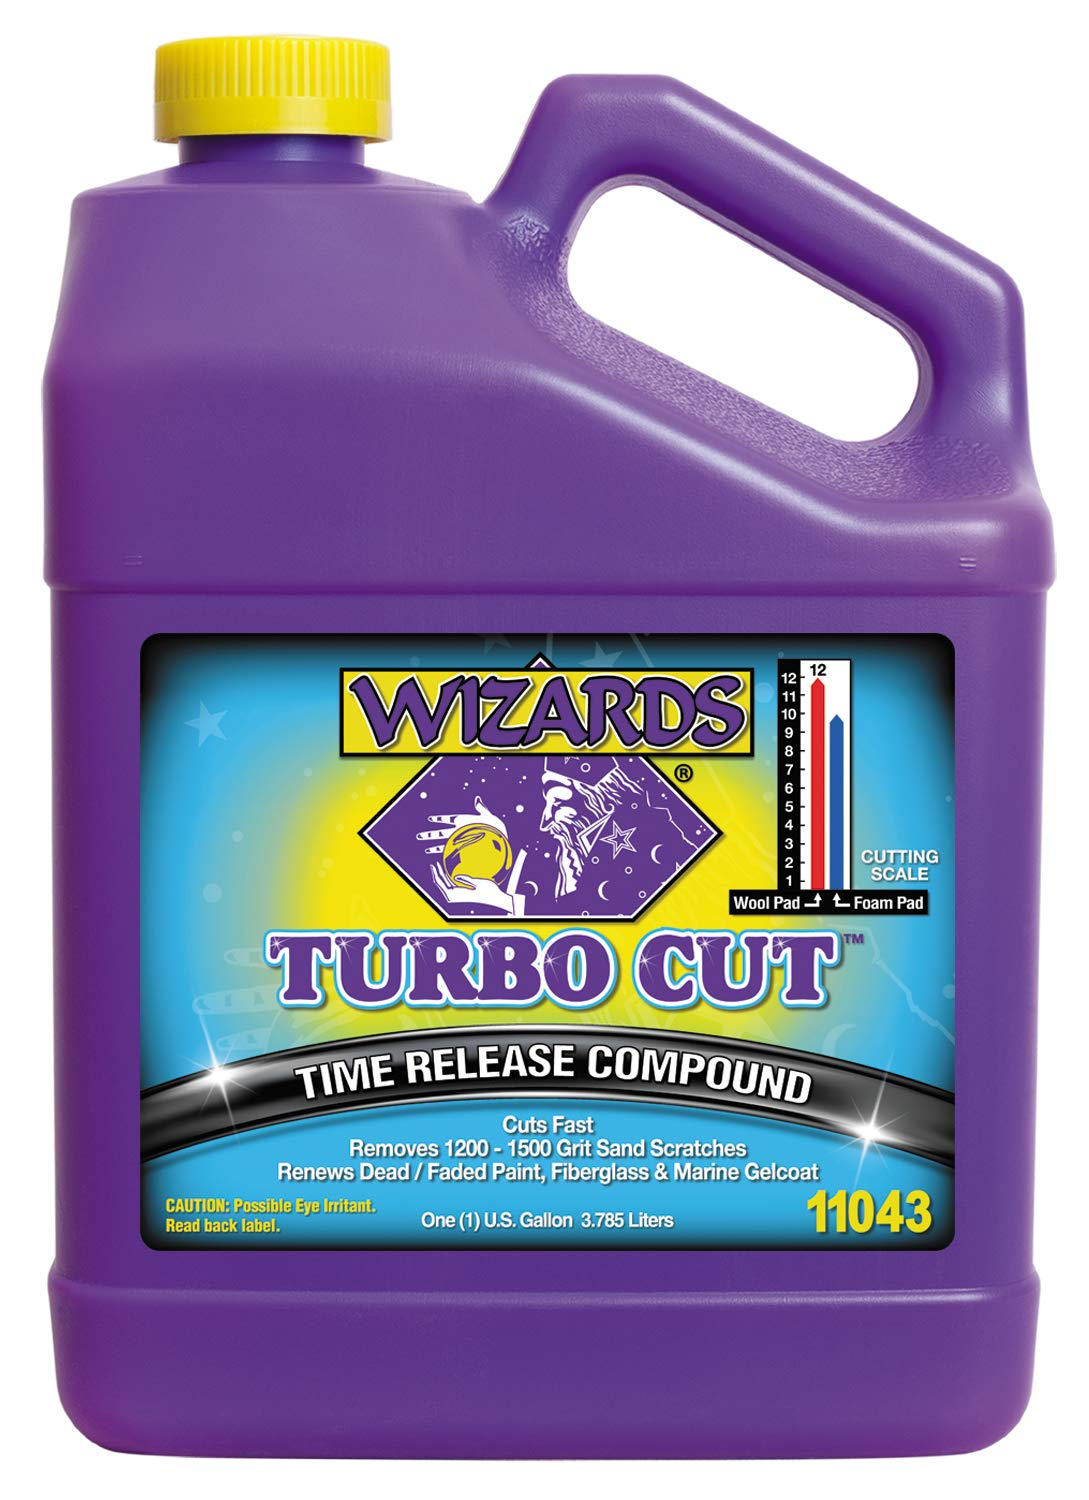 Wizards Buffing Liquid - Cutting Compounds & Polish Machine Glaze (Gallon, Turbo Cut Compound) by Wizards